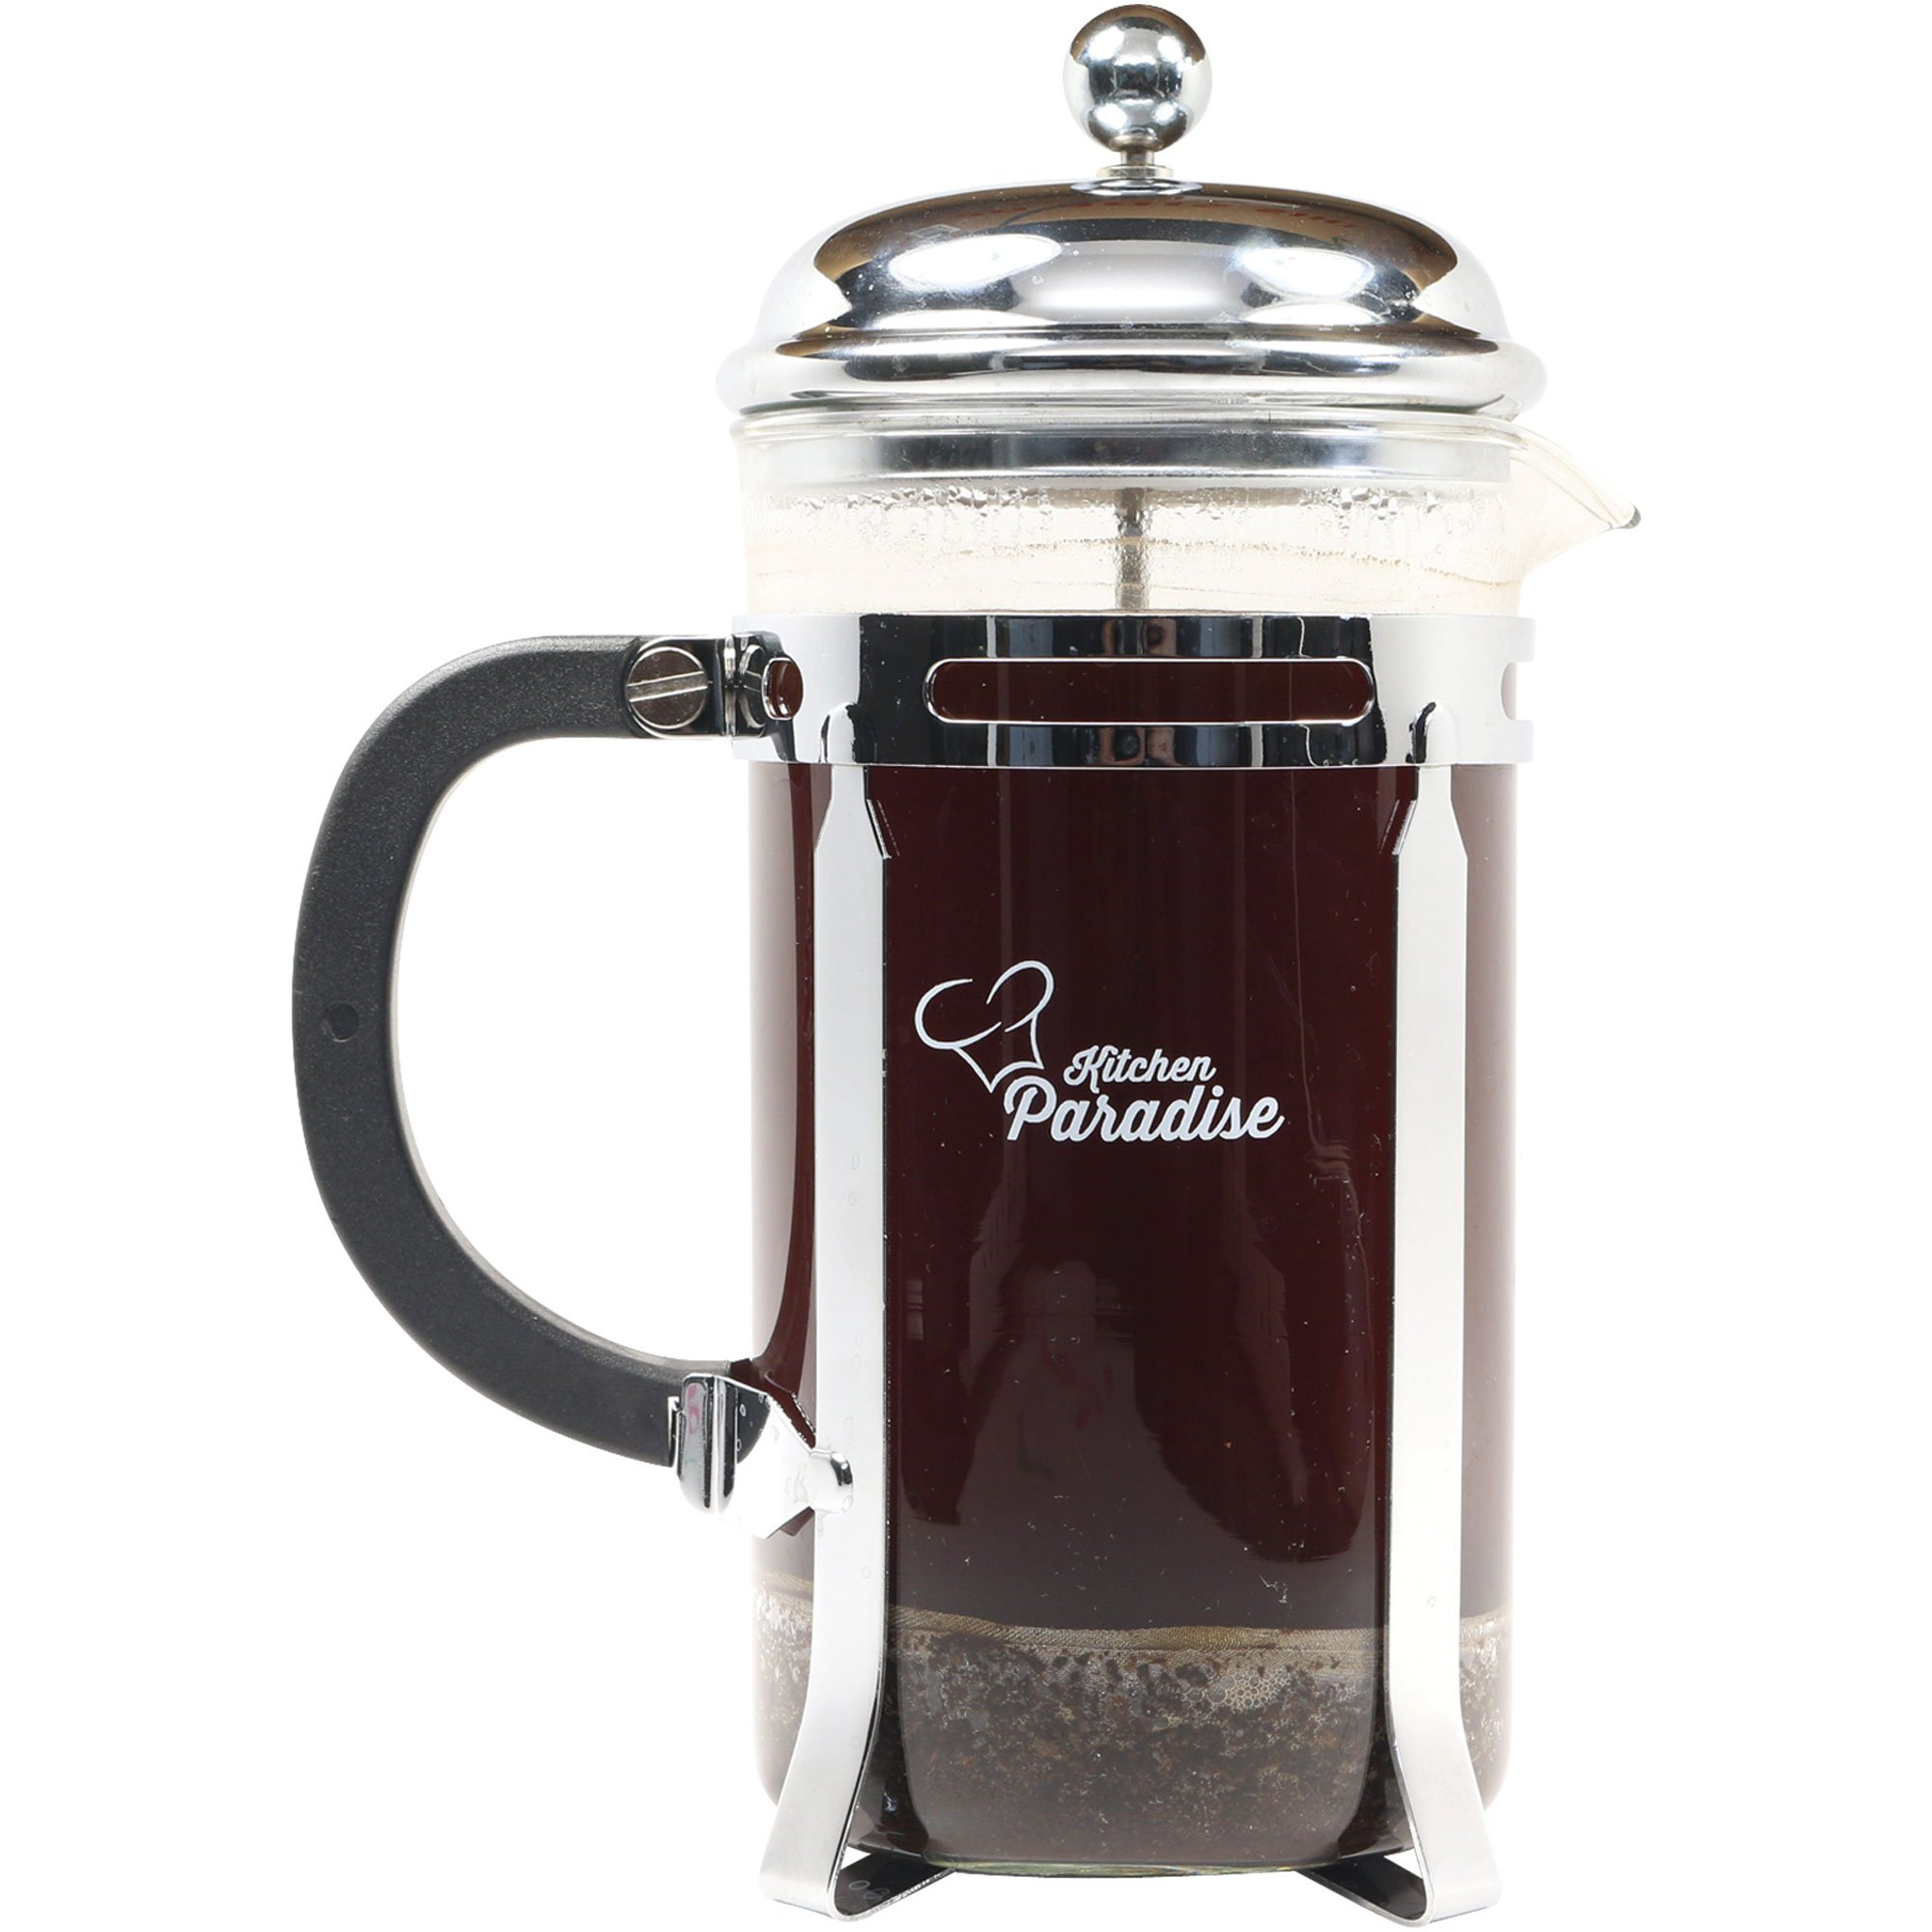 #1 French Press for Coffee & Tea - 8 cup/4 mug 34oz, Chrome Finish Frame & Lid, Stainless Steel Plunger, Heat Resistant Glass, 2 Replacement Screens. Makes a Great Gift. Free Recipe E-BOOK included